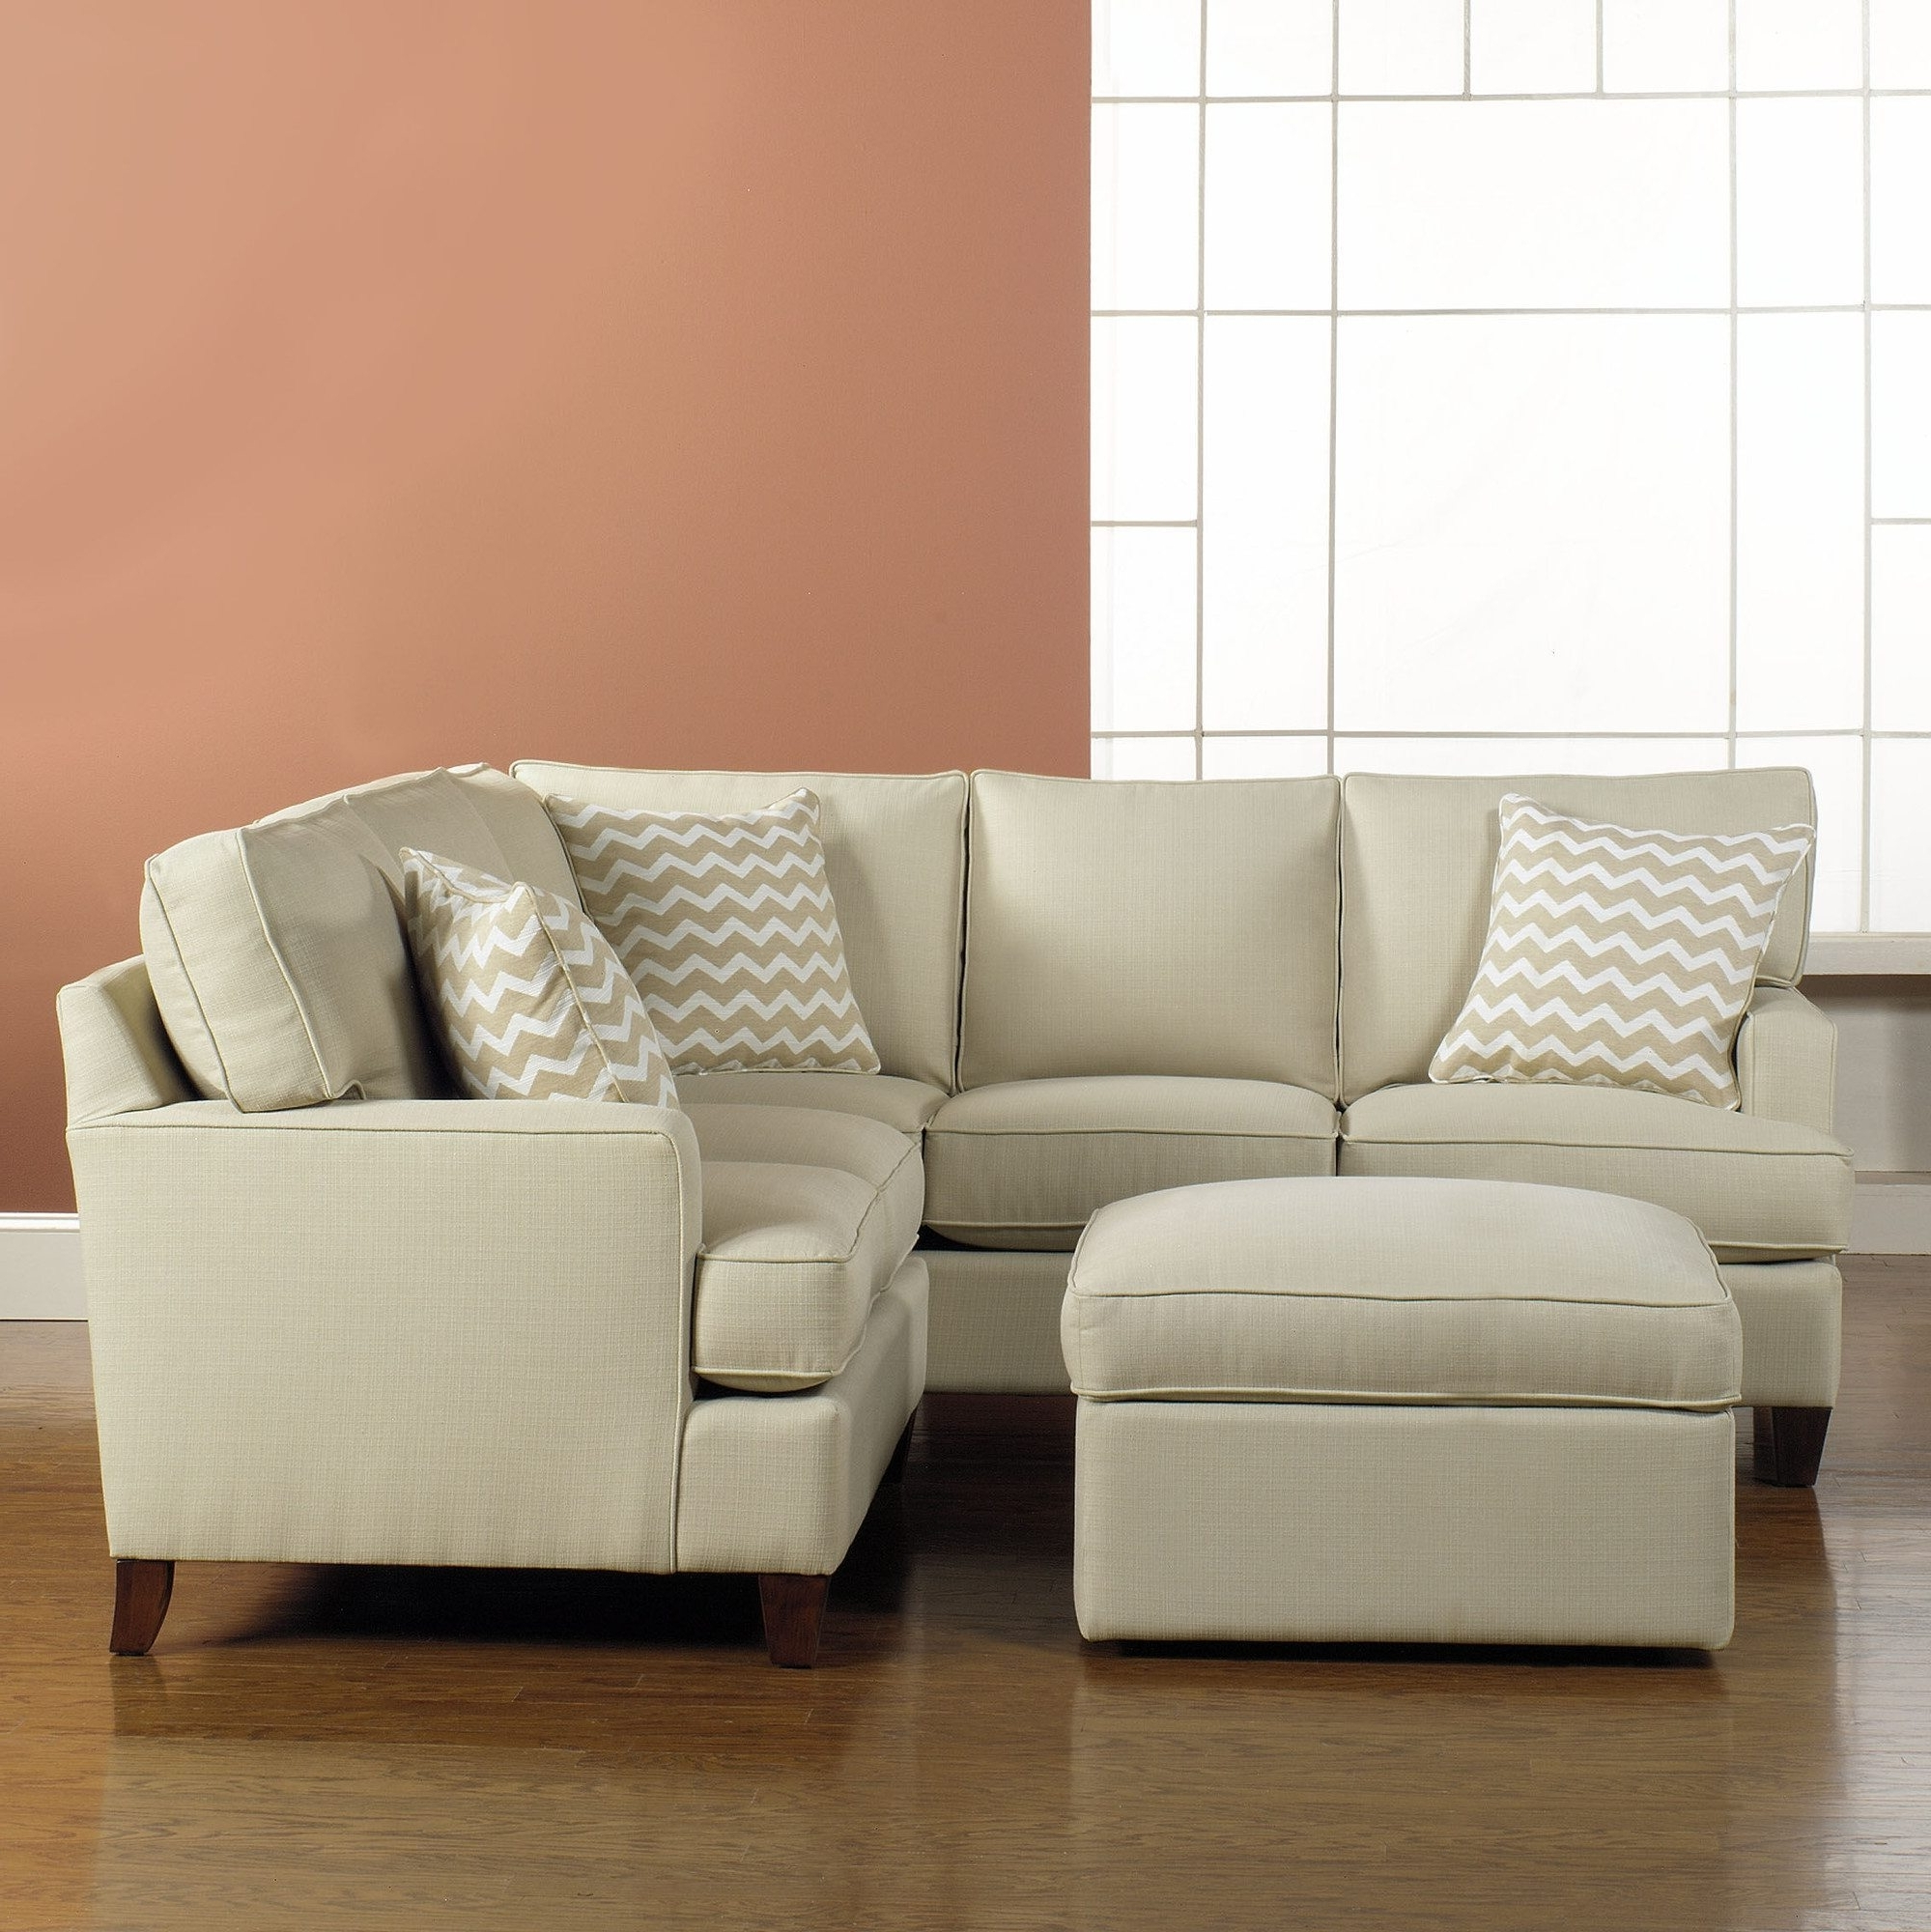 Sofa : Small 2 Piece Sectional Sofa Comfy Sectionals For Small Inside Preferred Narrow Spaces Sectional Sofas (View 2 of 15)